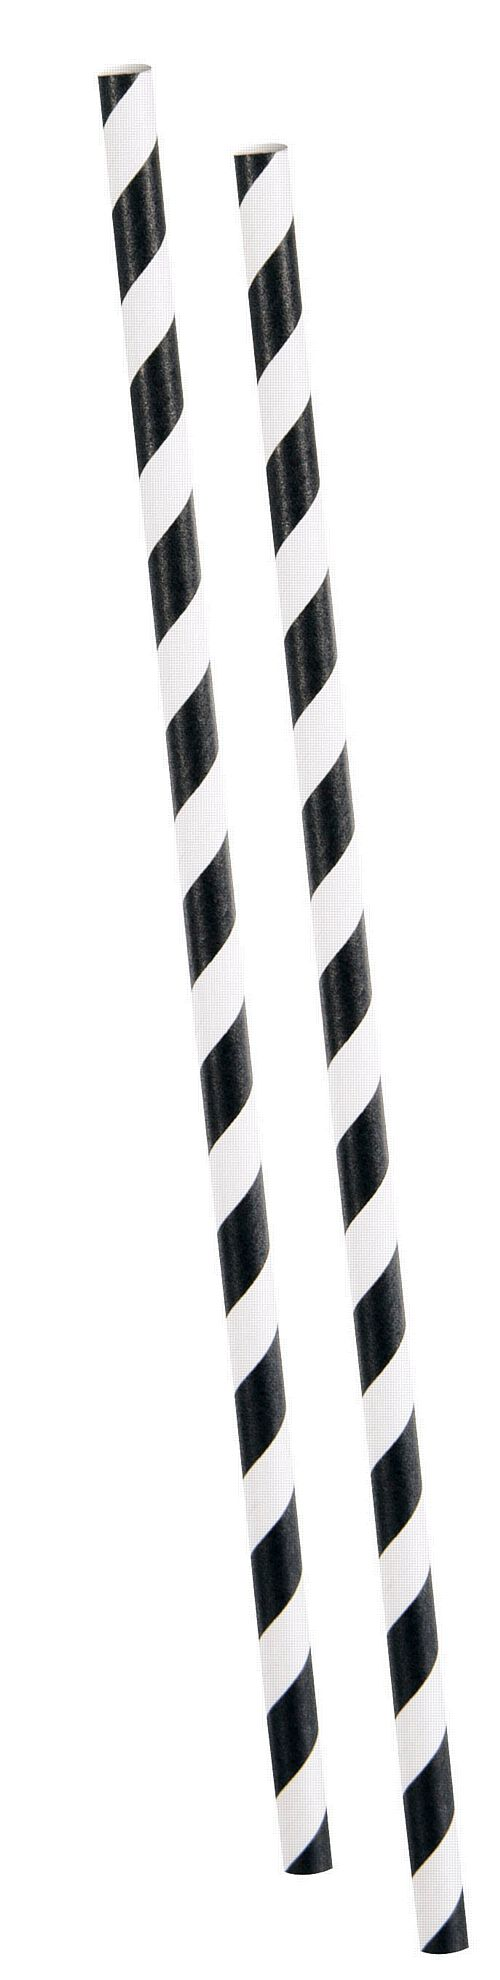 Black Striped Paper Straws - Pack of 24